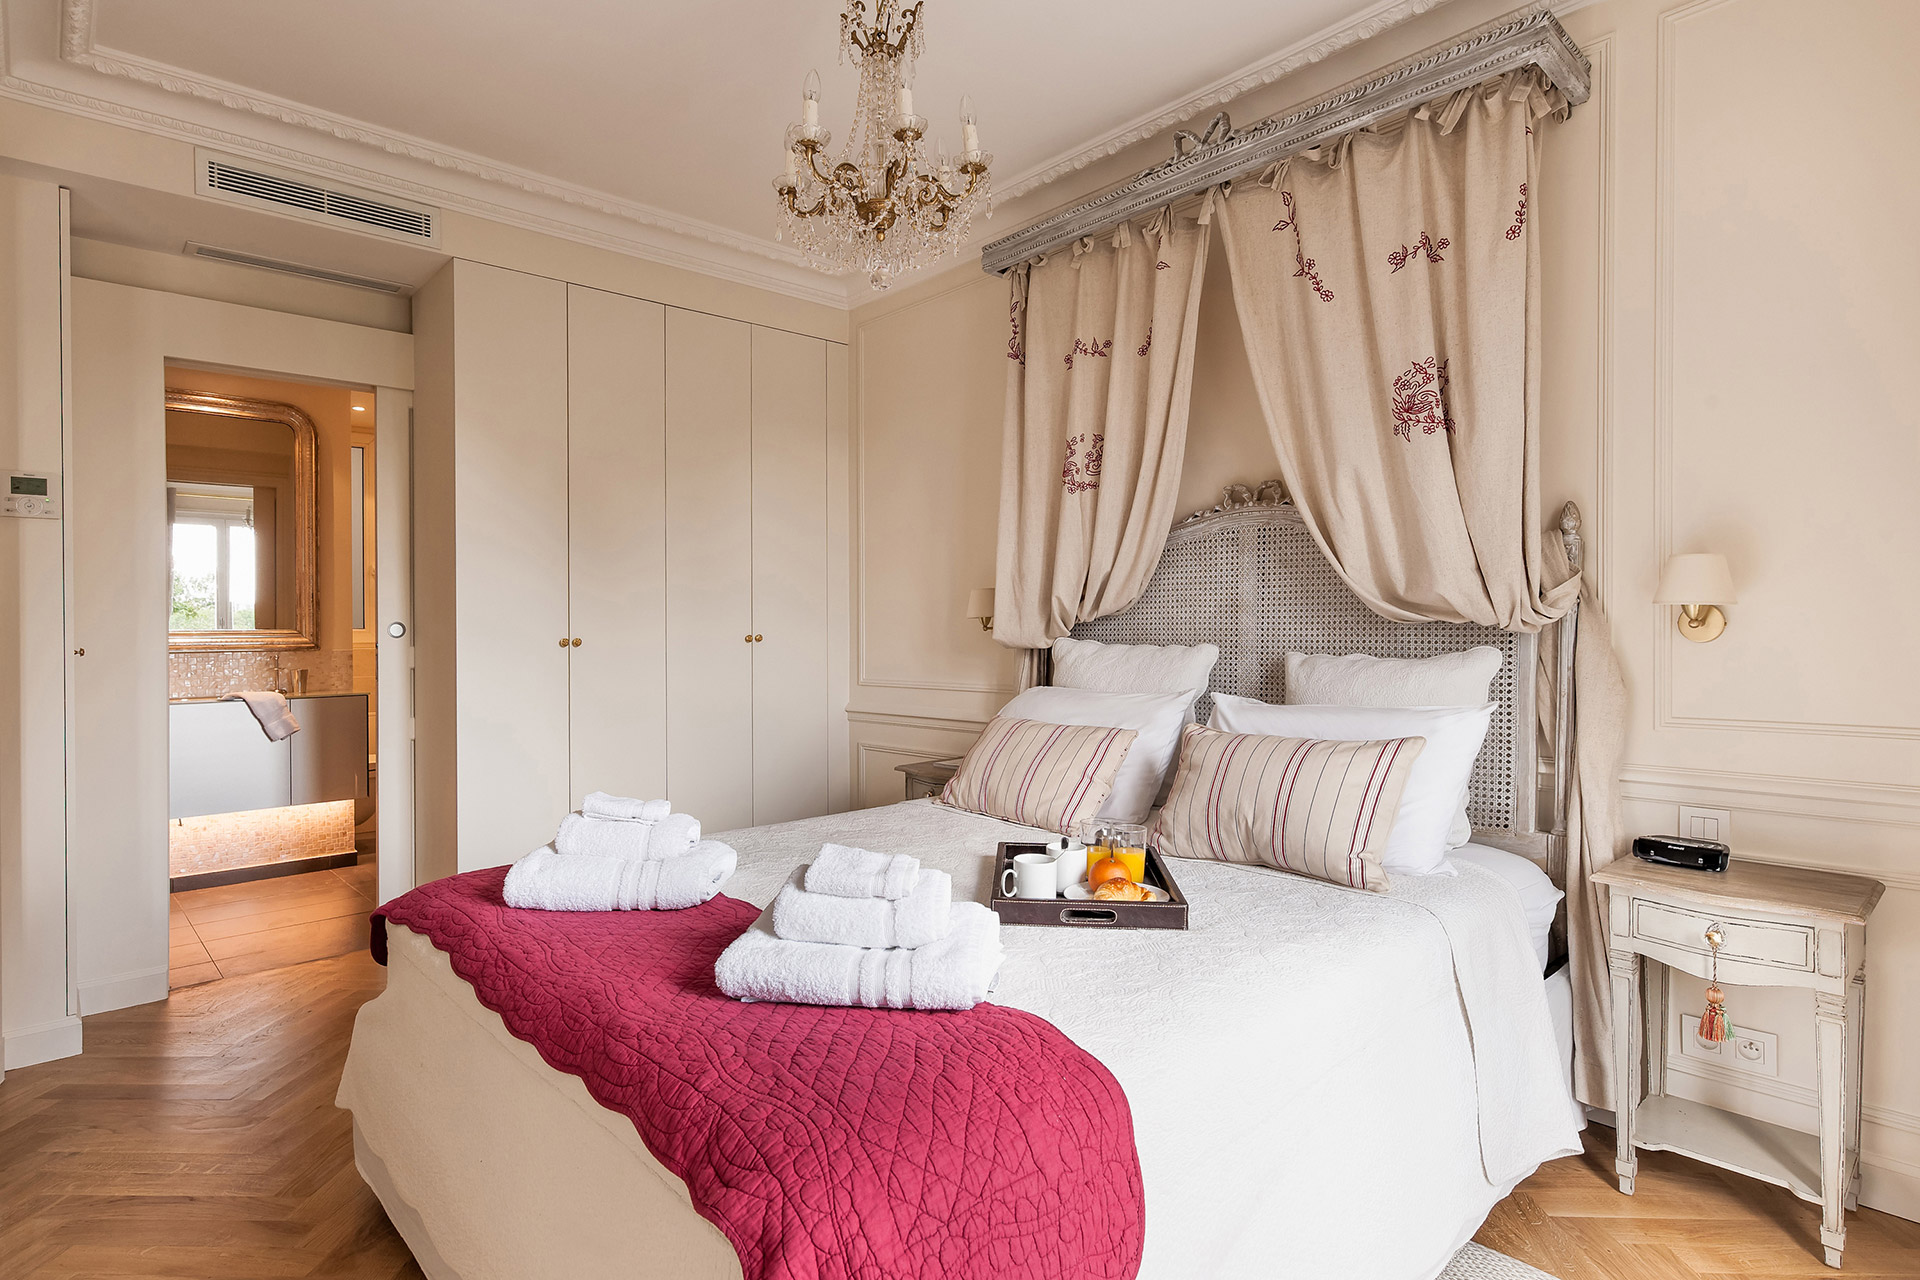 En suite bathroom to the main bedroom of the Merlot vacation rental offered by Paris Perfect